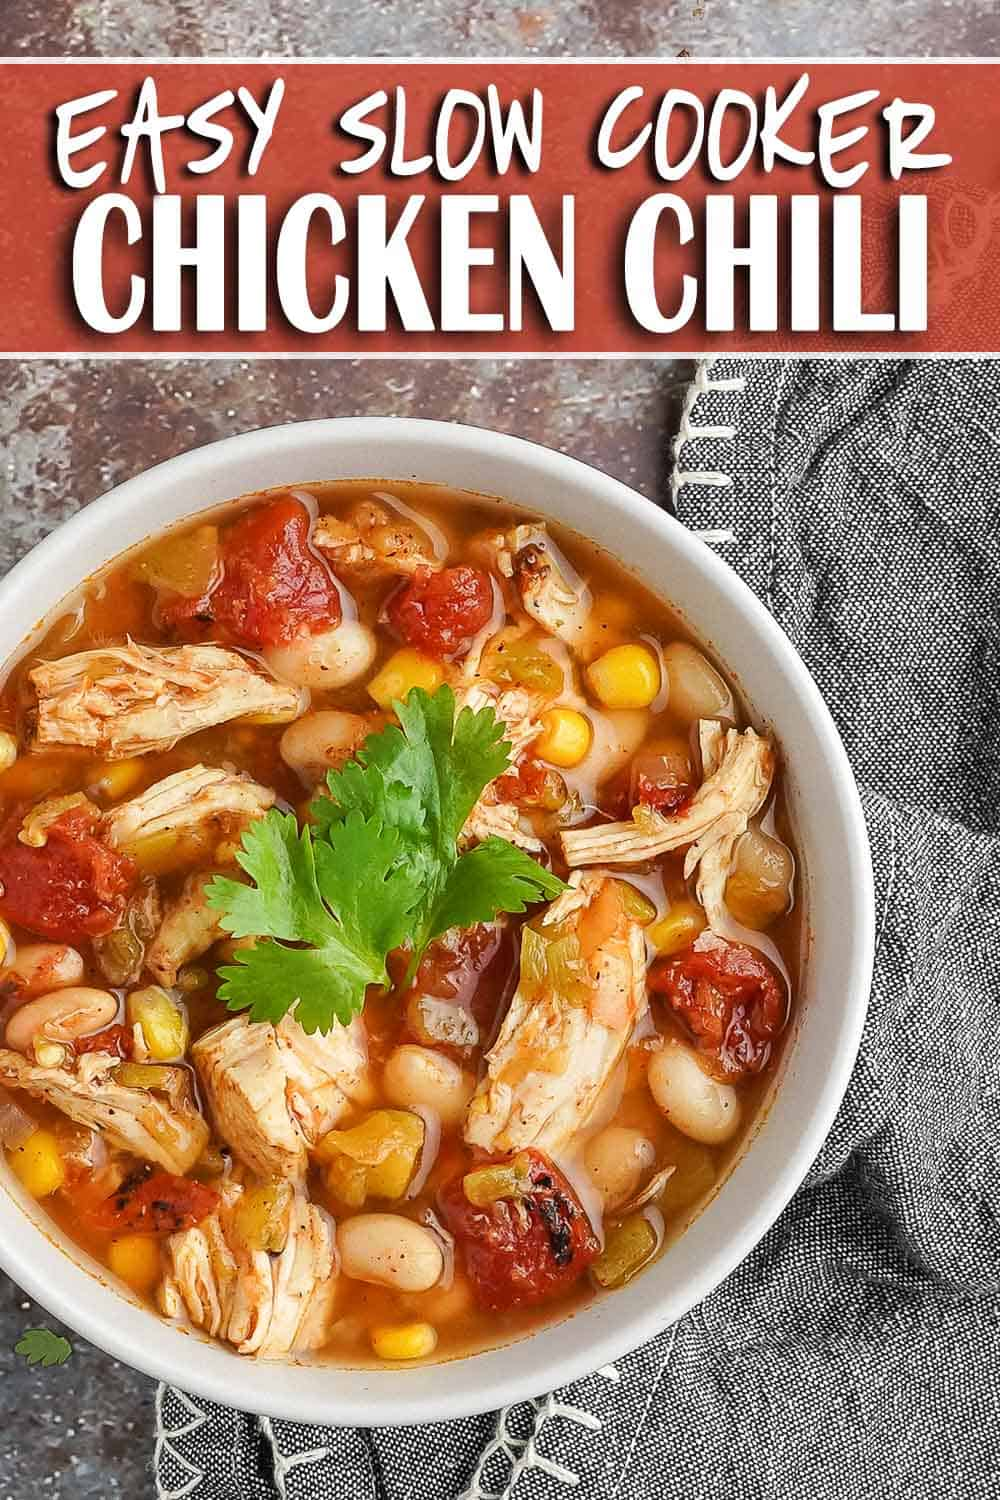 Easy Slow Cooker Chicken Chili in bowl with napkin on the side